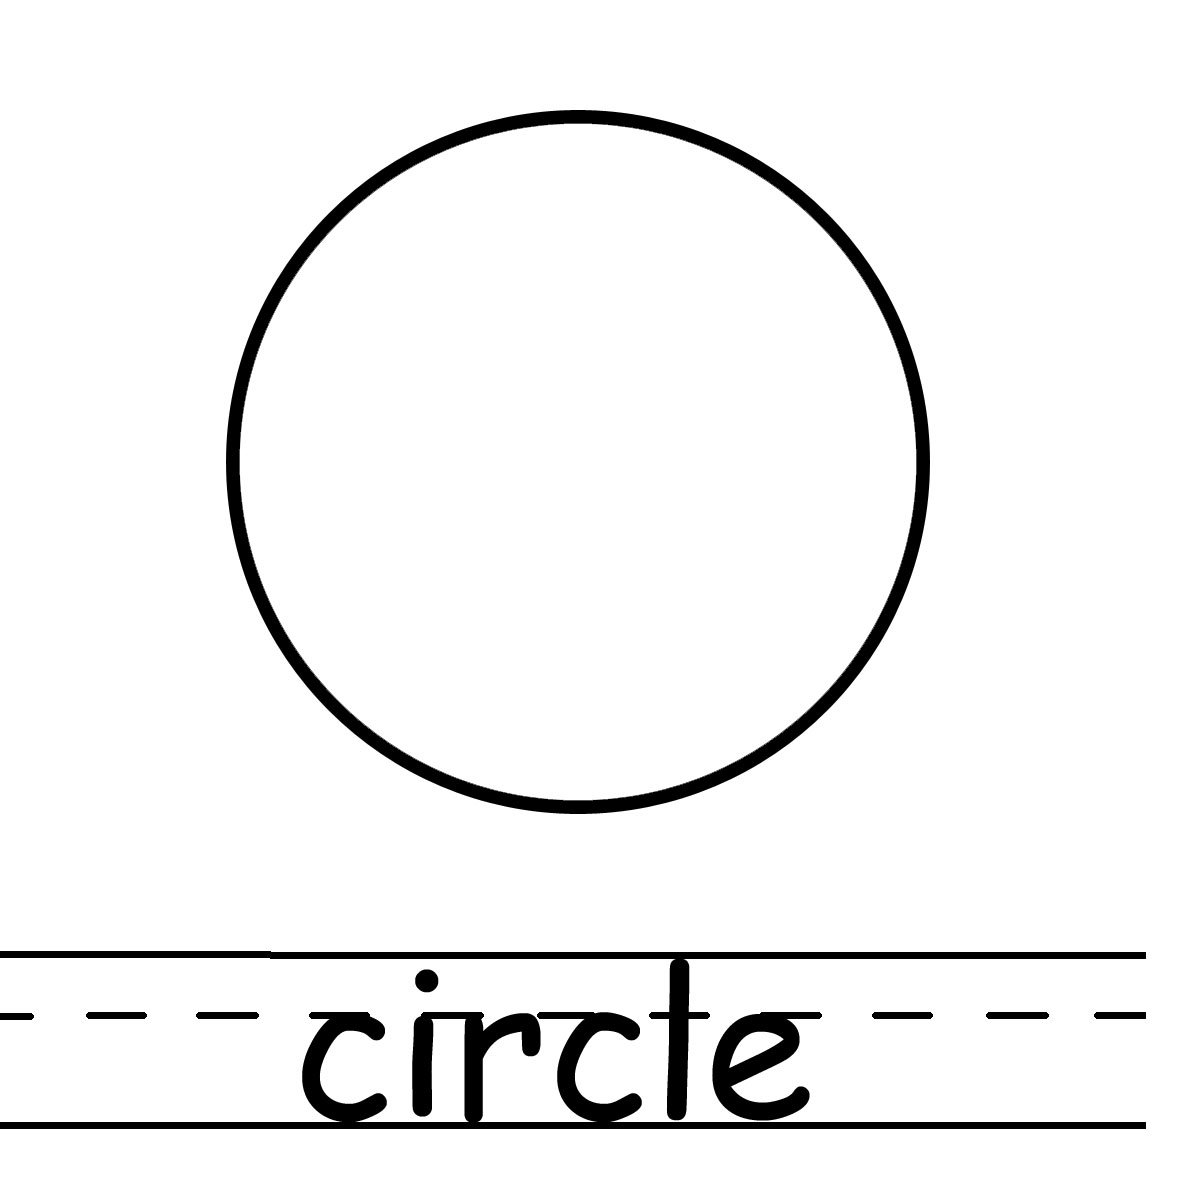 Circle shape clipart kid 2